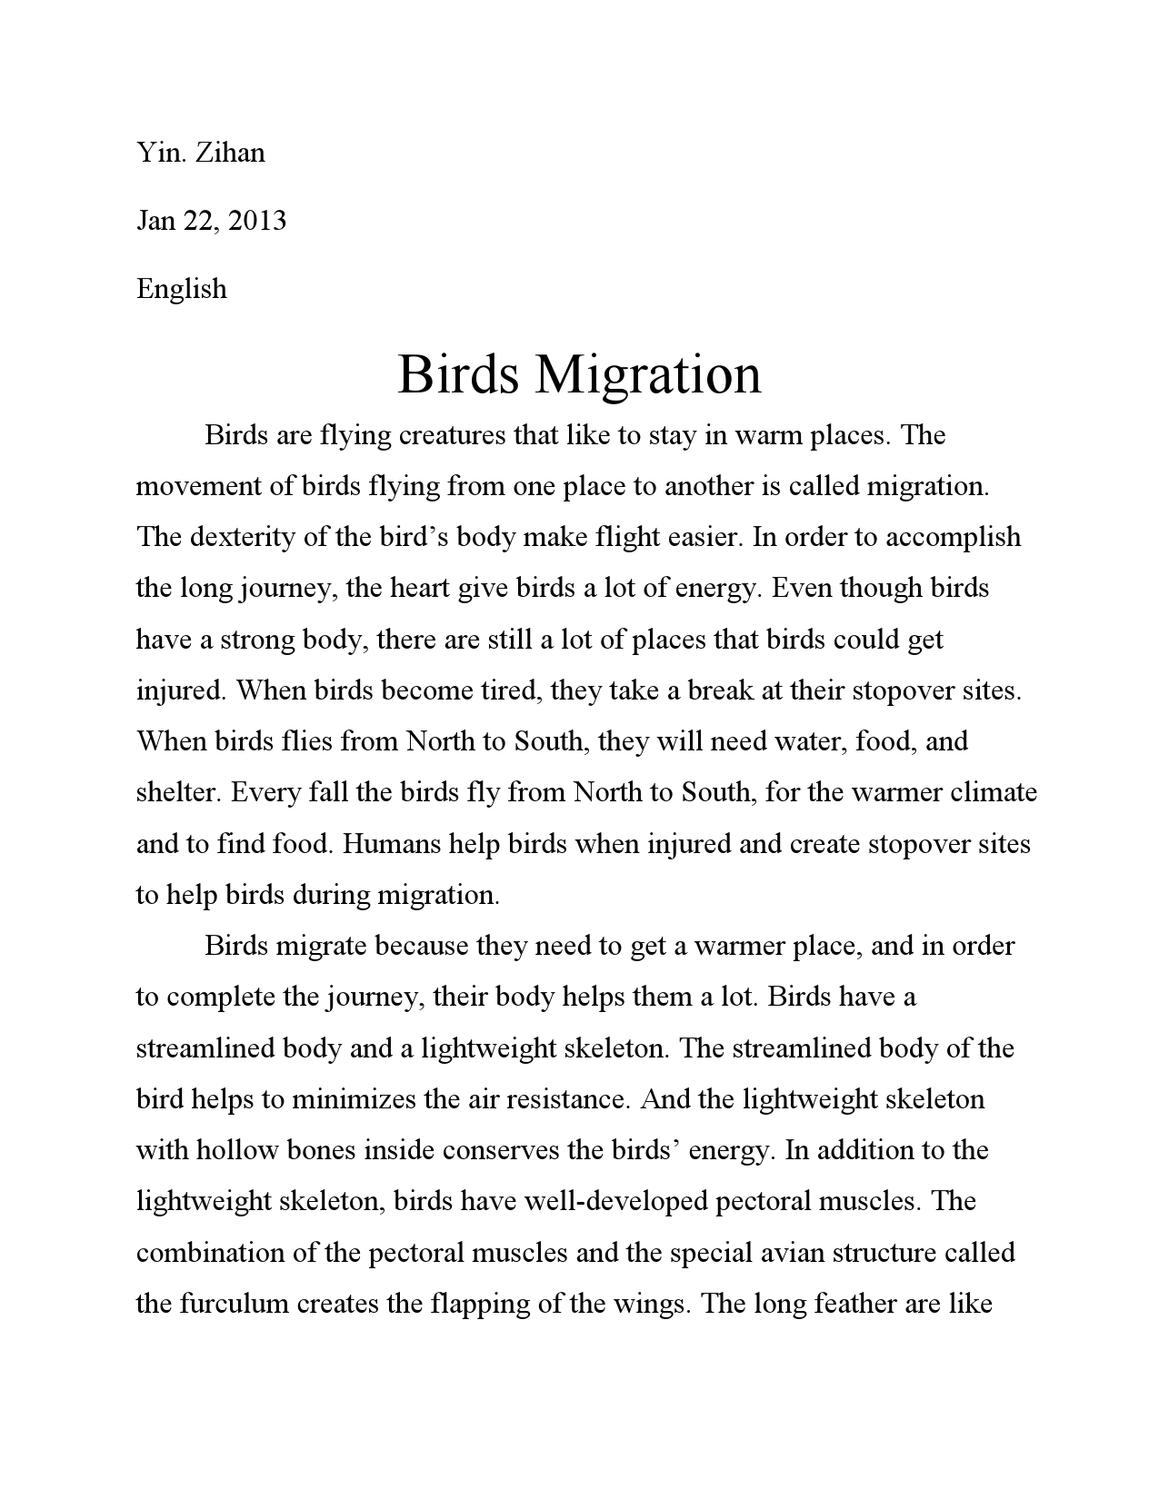 birds migration essay by bill yin issuu